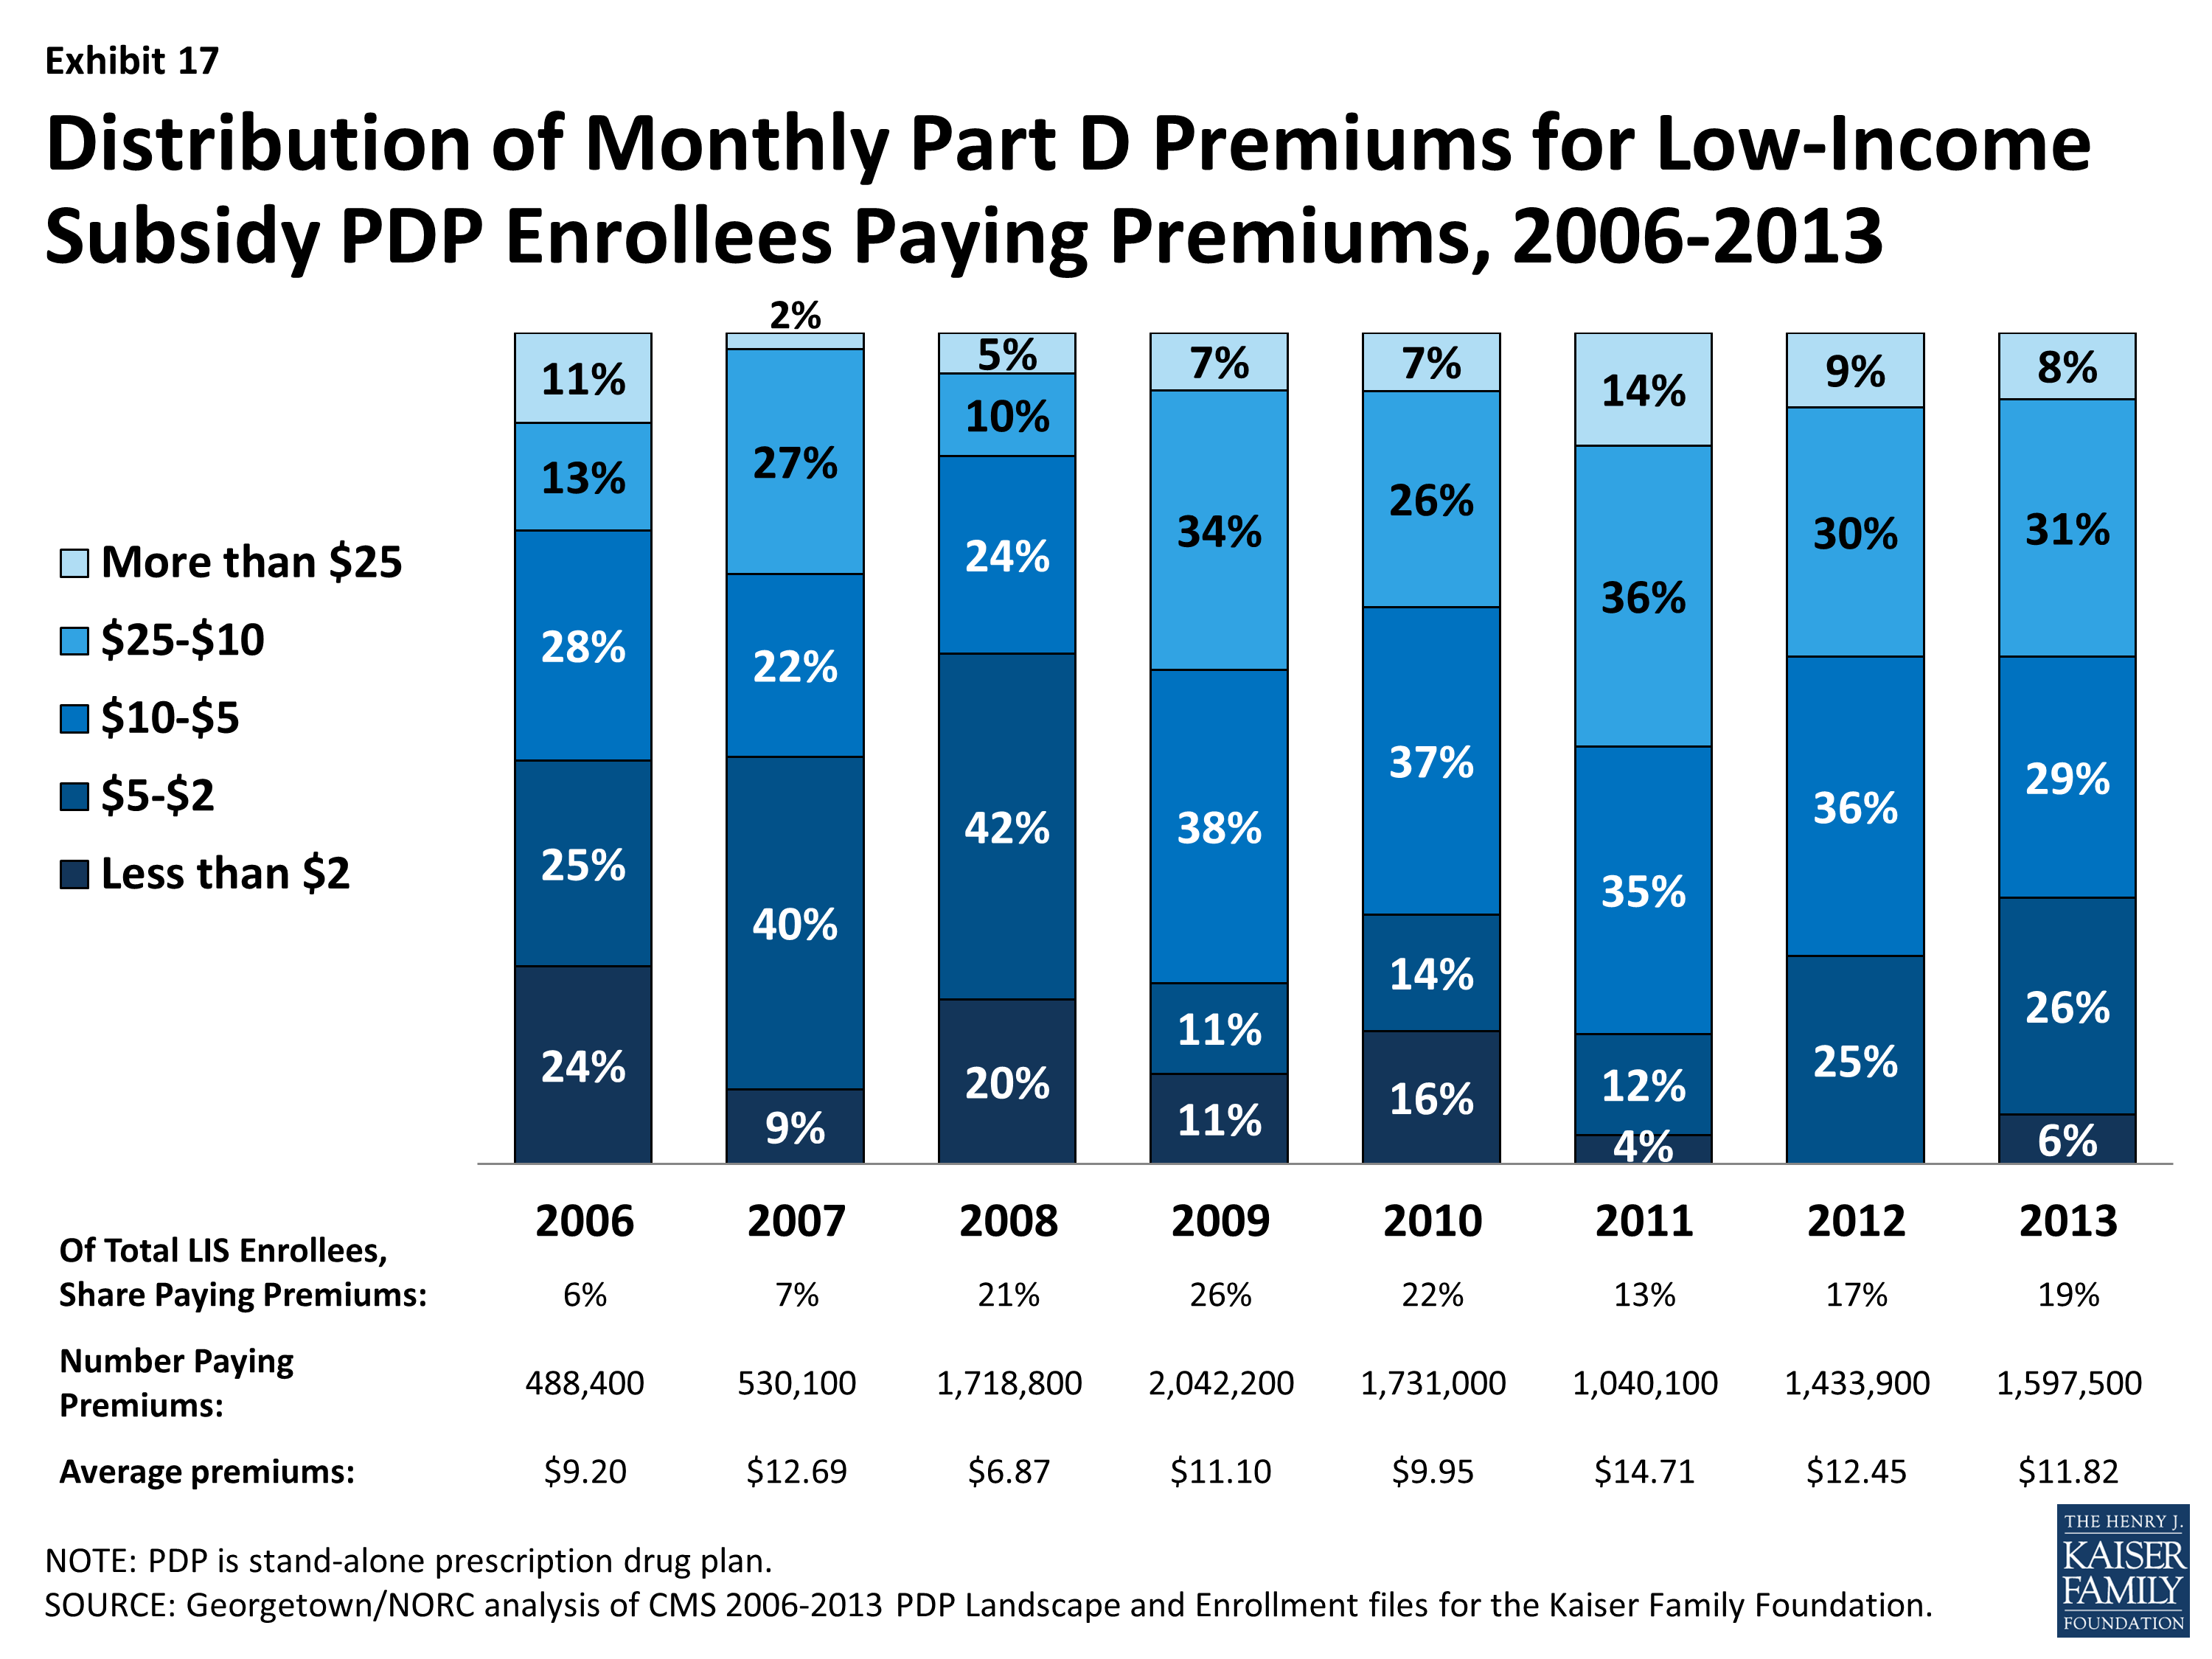 abf765b13c4 Medicare Part D Prescription Drug Plans: The Marketplace in 2013 and Key  Trends, 2006-2013 | The Henry J. Kaiser Family Foundation